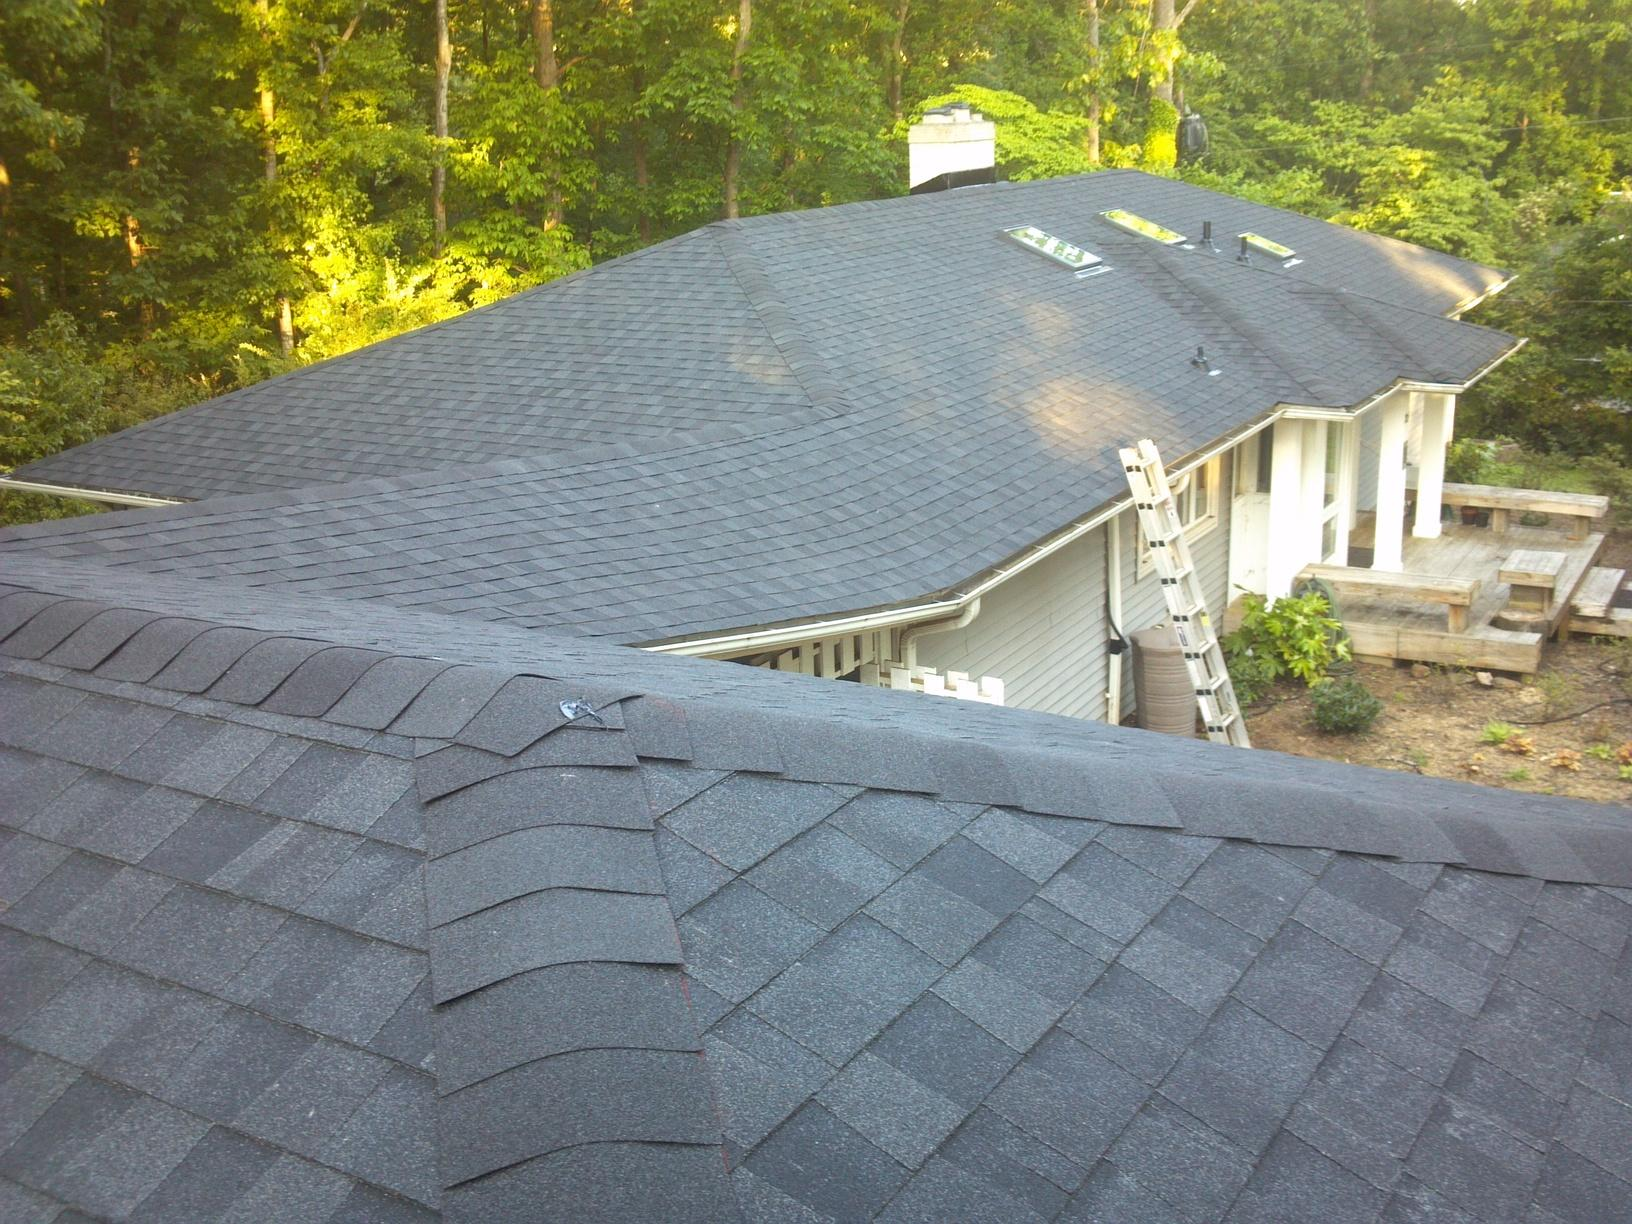 Roof Replacement in Clemson, SC - After Photo